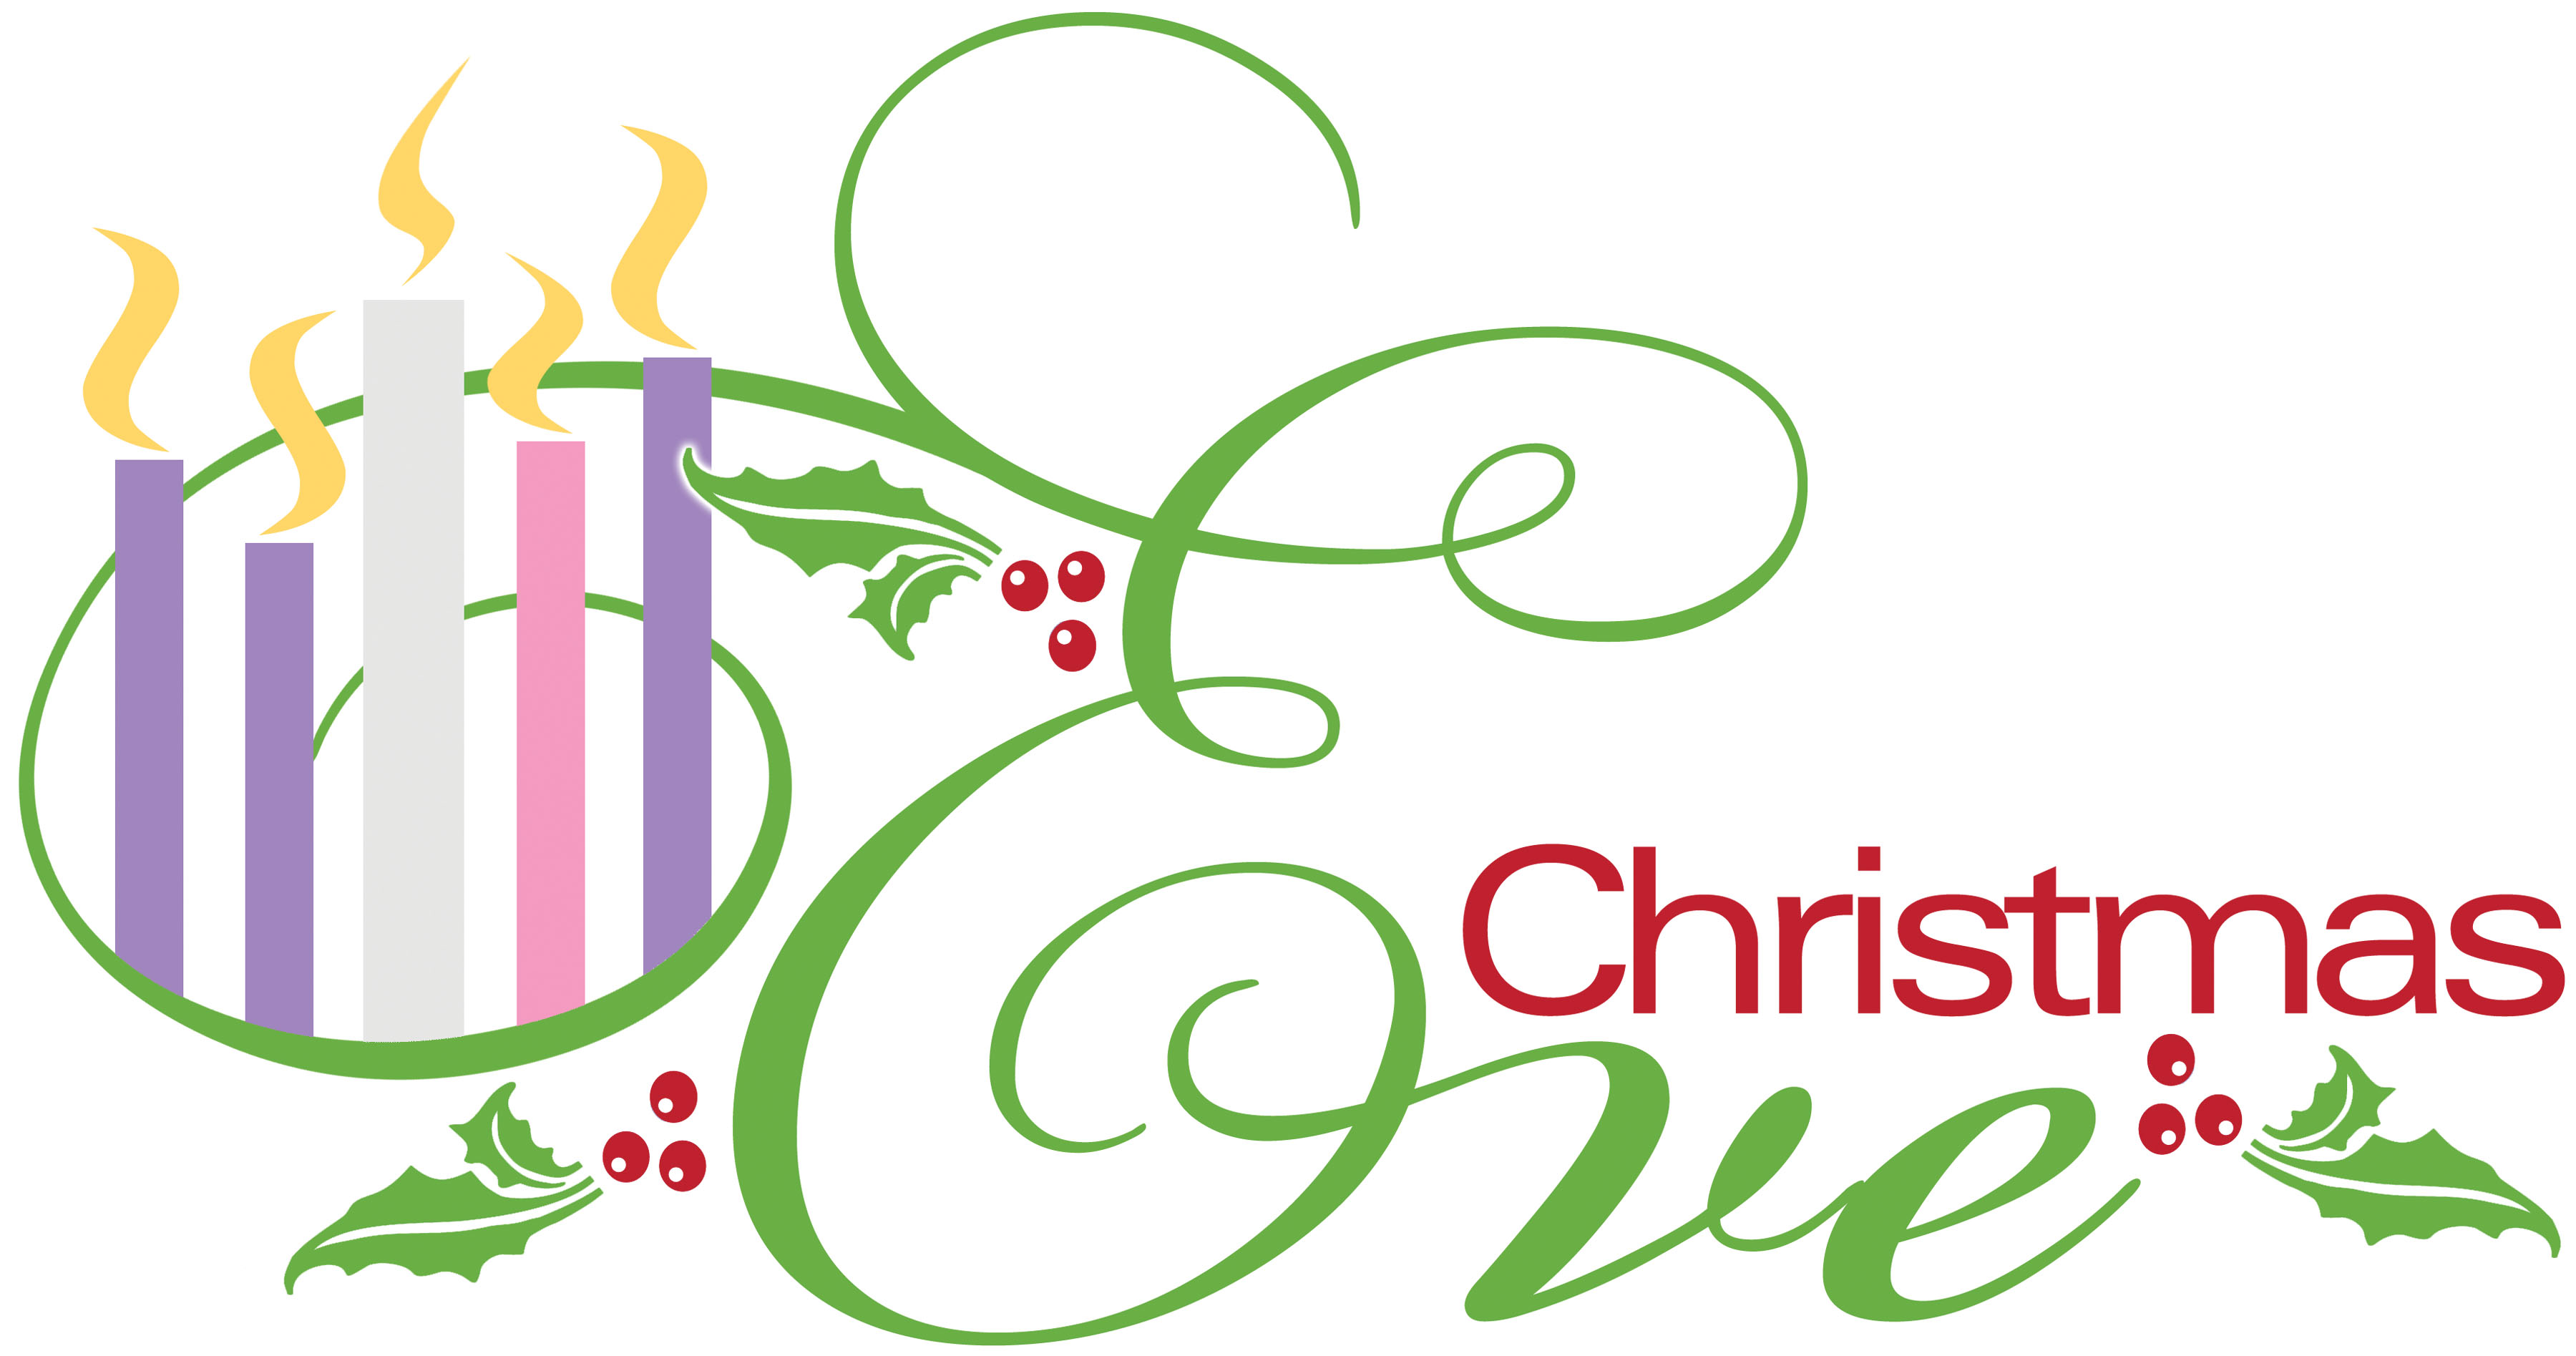 Free christian clipart celebration of marriage party ideas svg free library Free Christmas Eve Cliparts, Download Free Clip Art, Free Clip Art ... svg free library